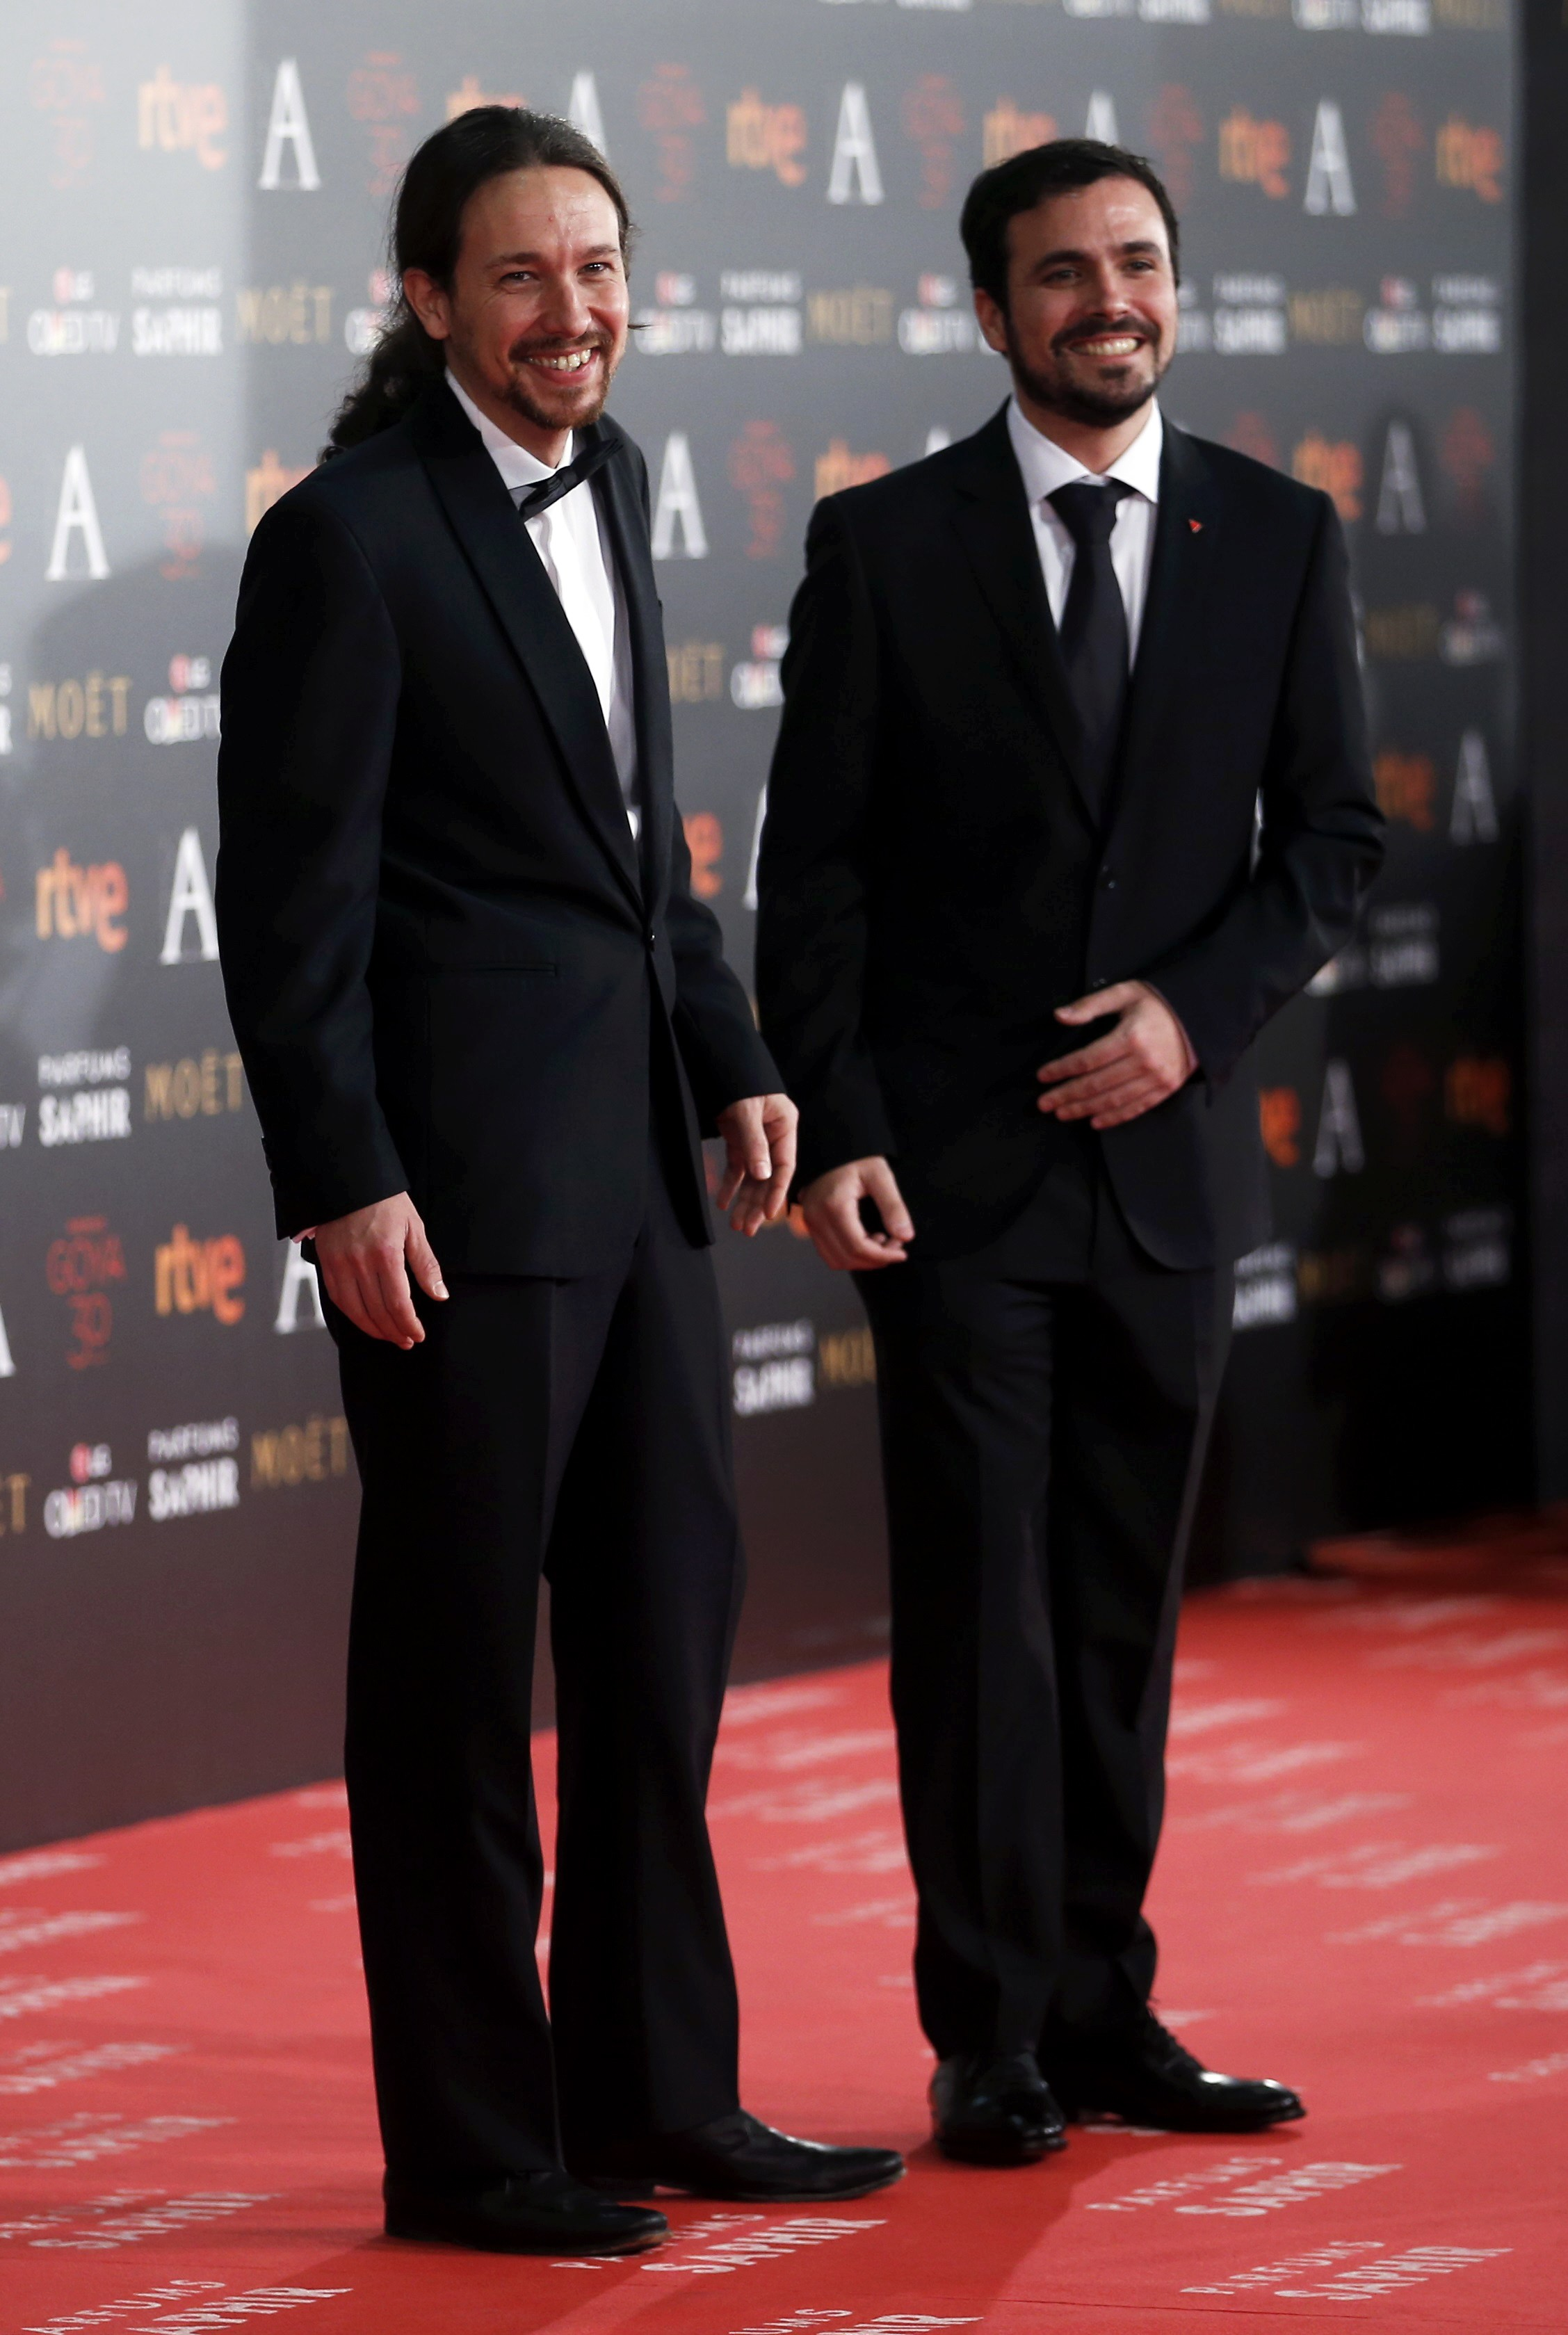 Podemos leader Iglesias and Izquierda Unida leader Garzon pose on the red carpet before the Spanish Film Academy's Goya Awards ceremony in Madrid